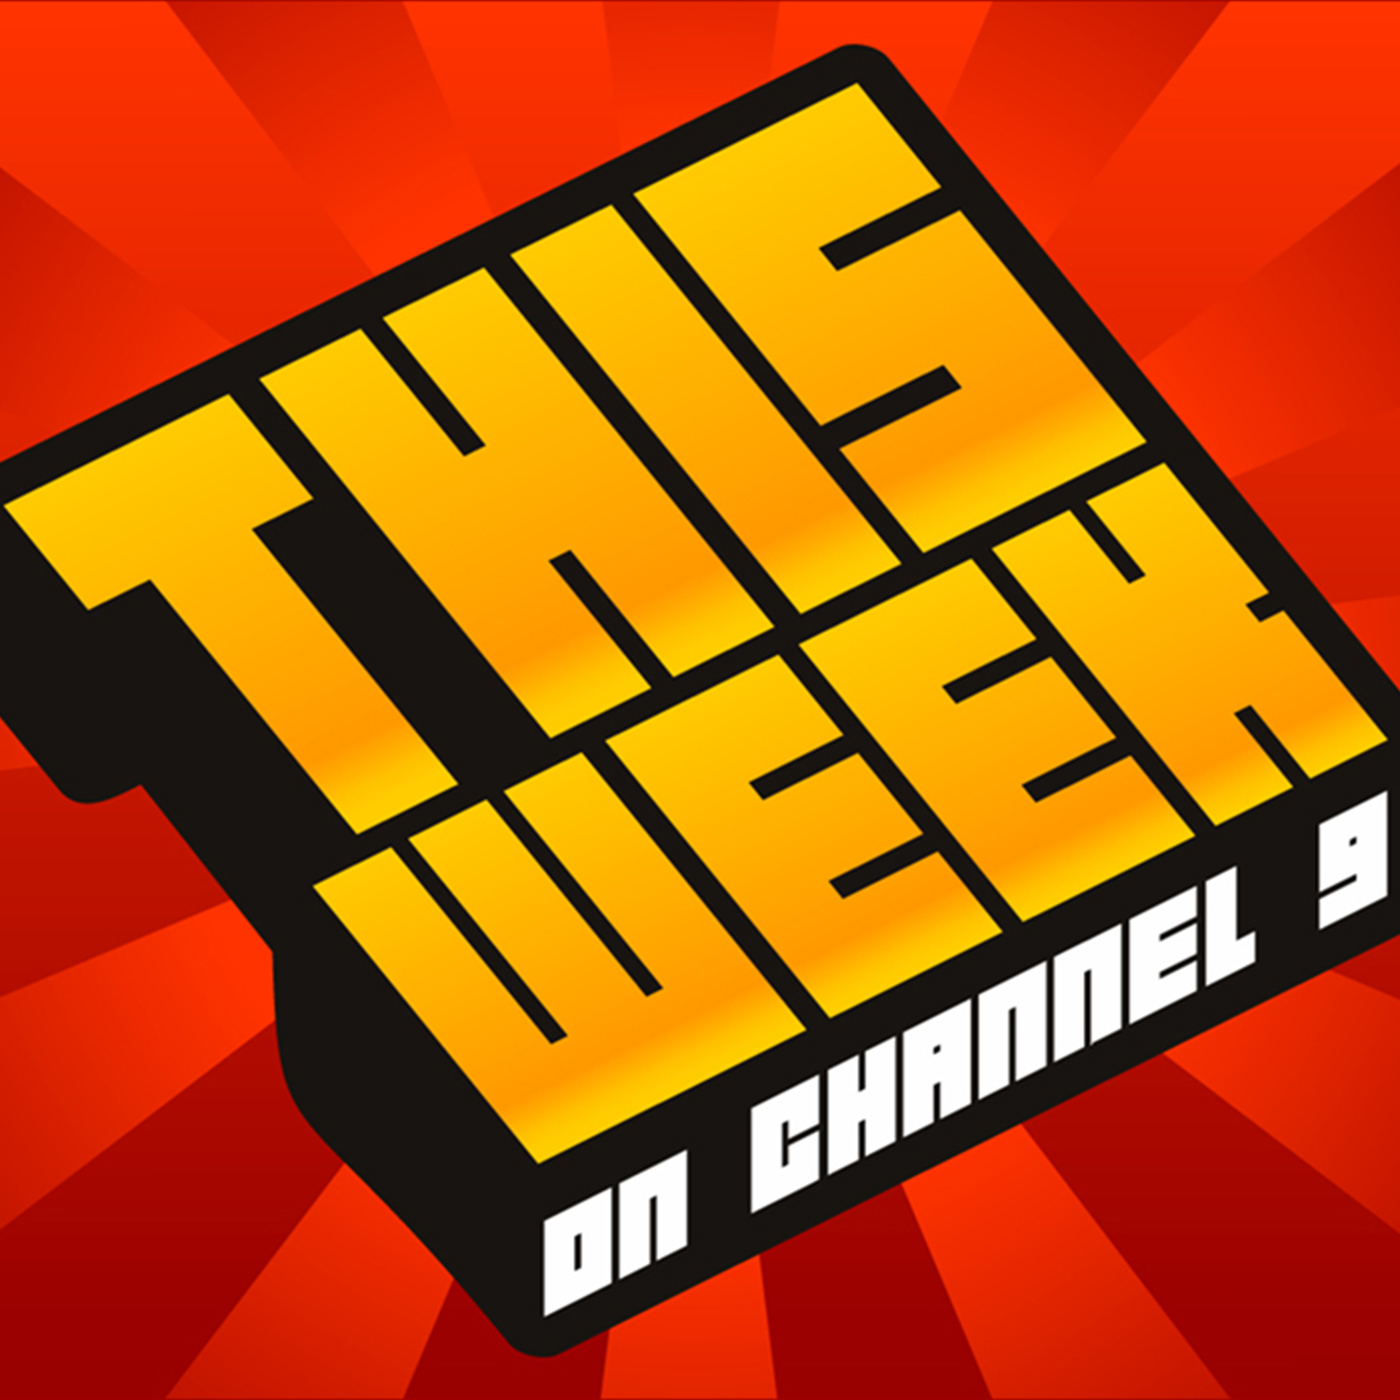 This Week On Channel 9 (MP4) - Channel 9 on Apple Podcasts